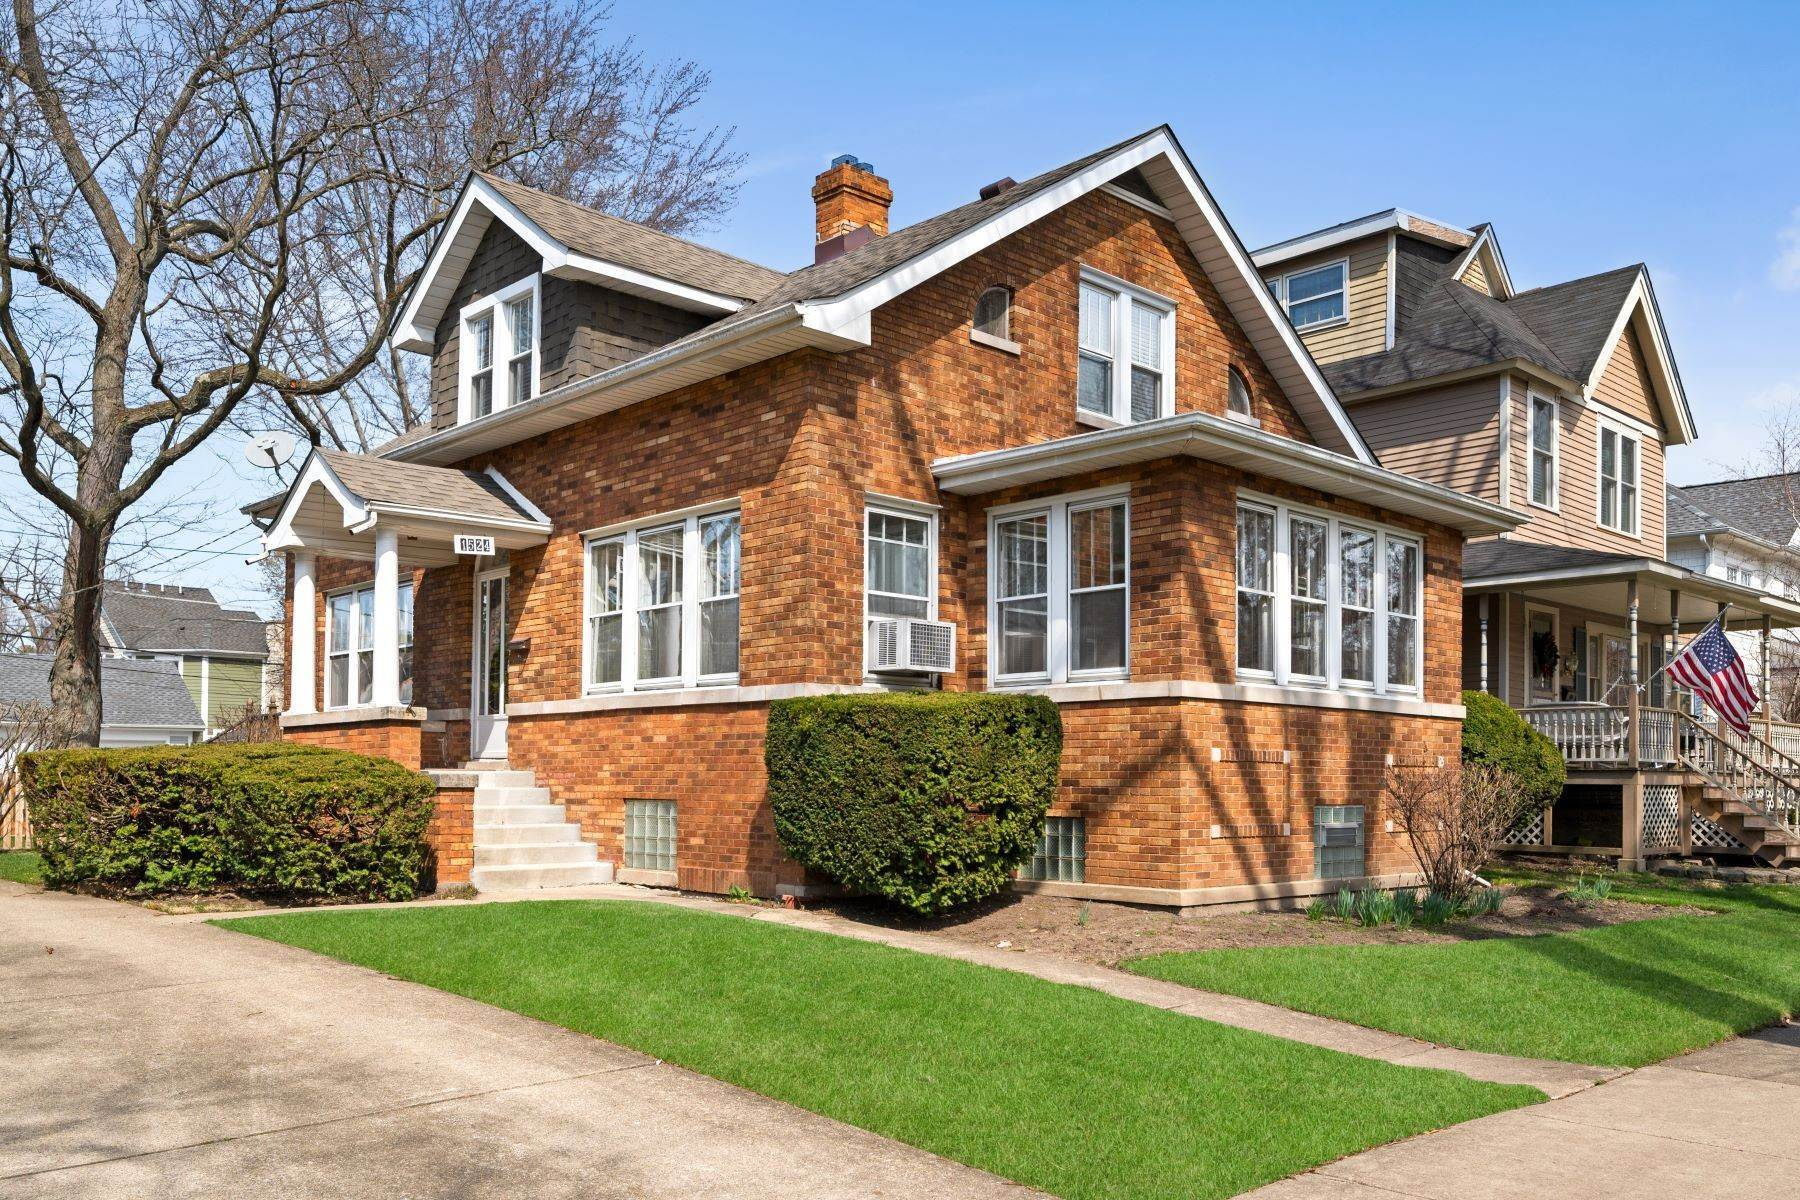 Property for Sale at Stately Home 1524 Forest Avenue Wilmette, Illinois 60091 United States